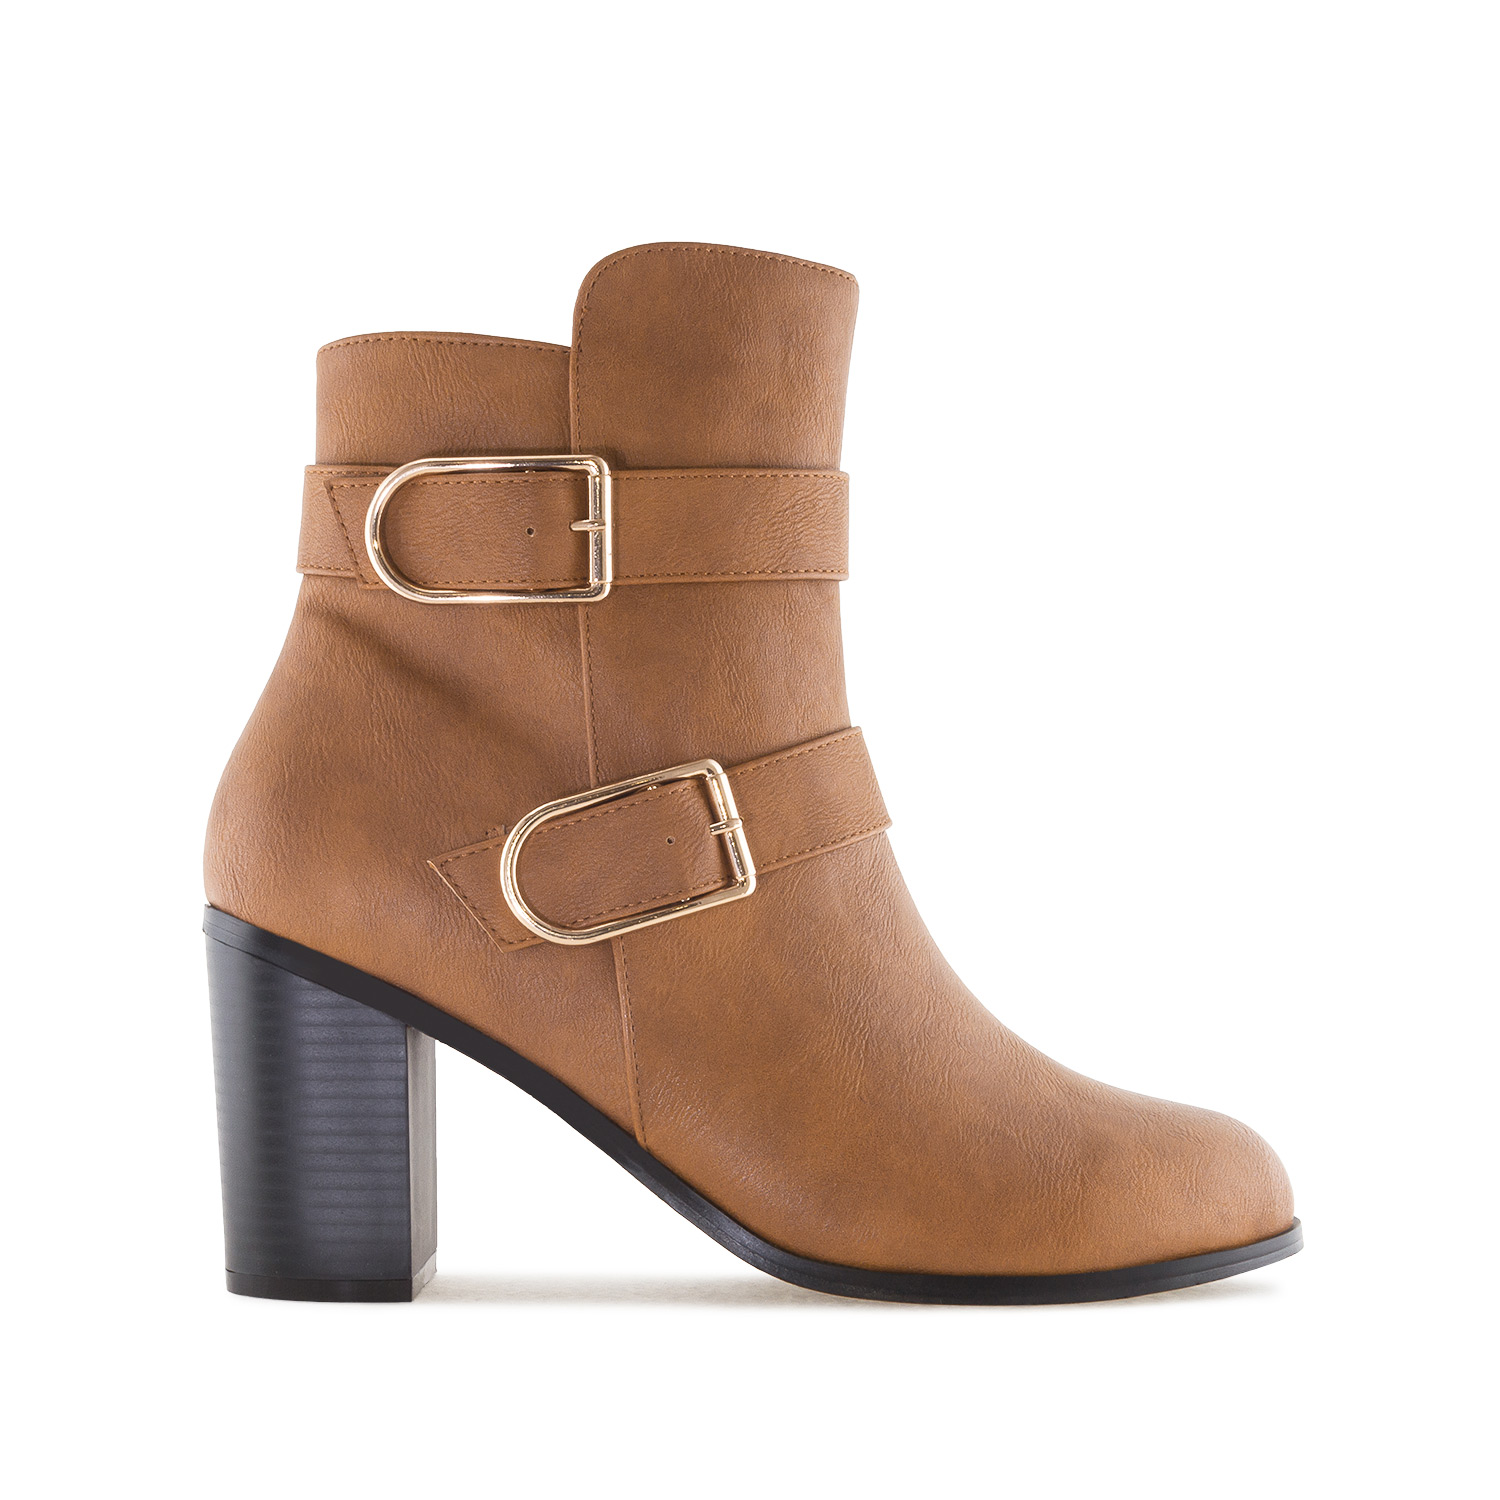 2-Buckle Ankle Boots in Camel faux Leather